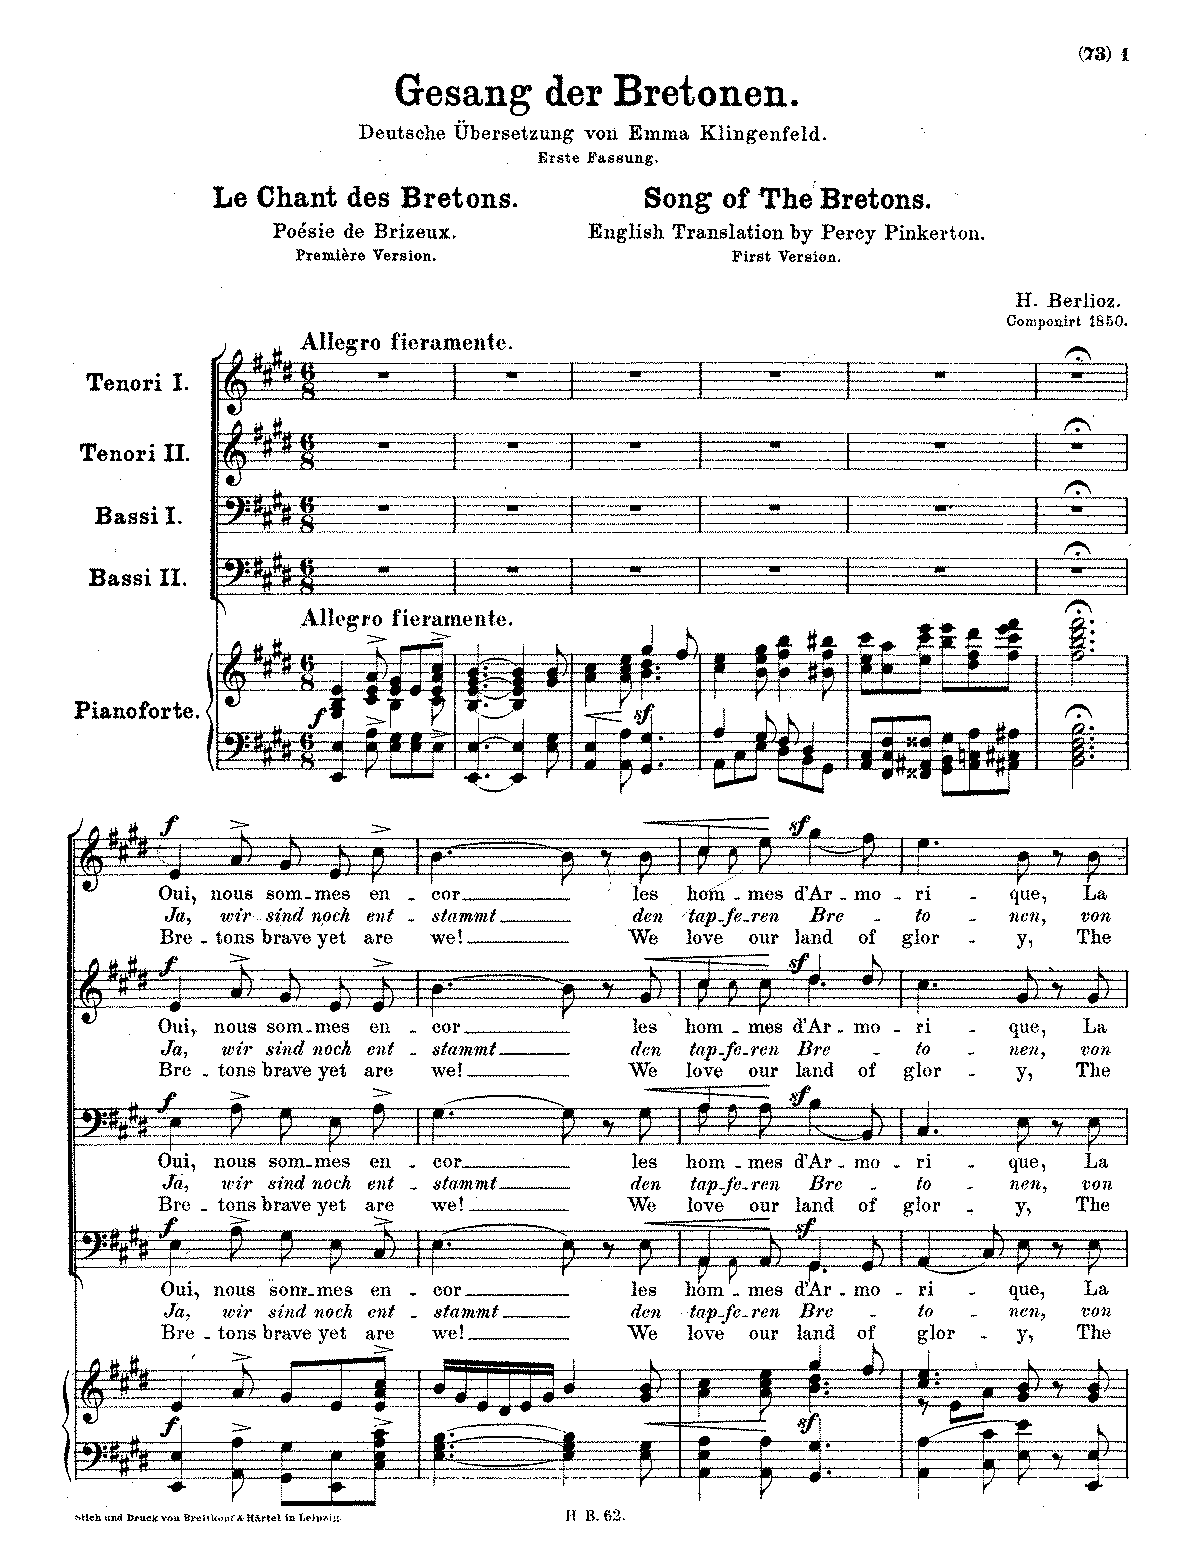 PMLP115007-Berlioz - Fleurs des landes, Op. 13 - No. 5 - Le chant des Bretons - First Version (vocal score).pdf